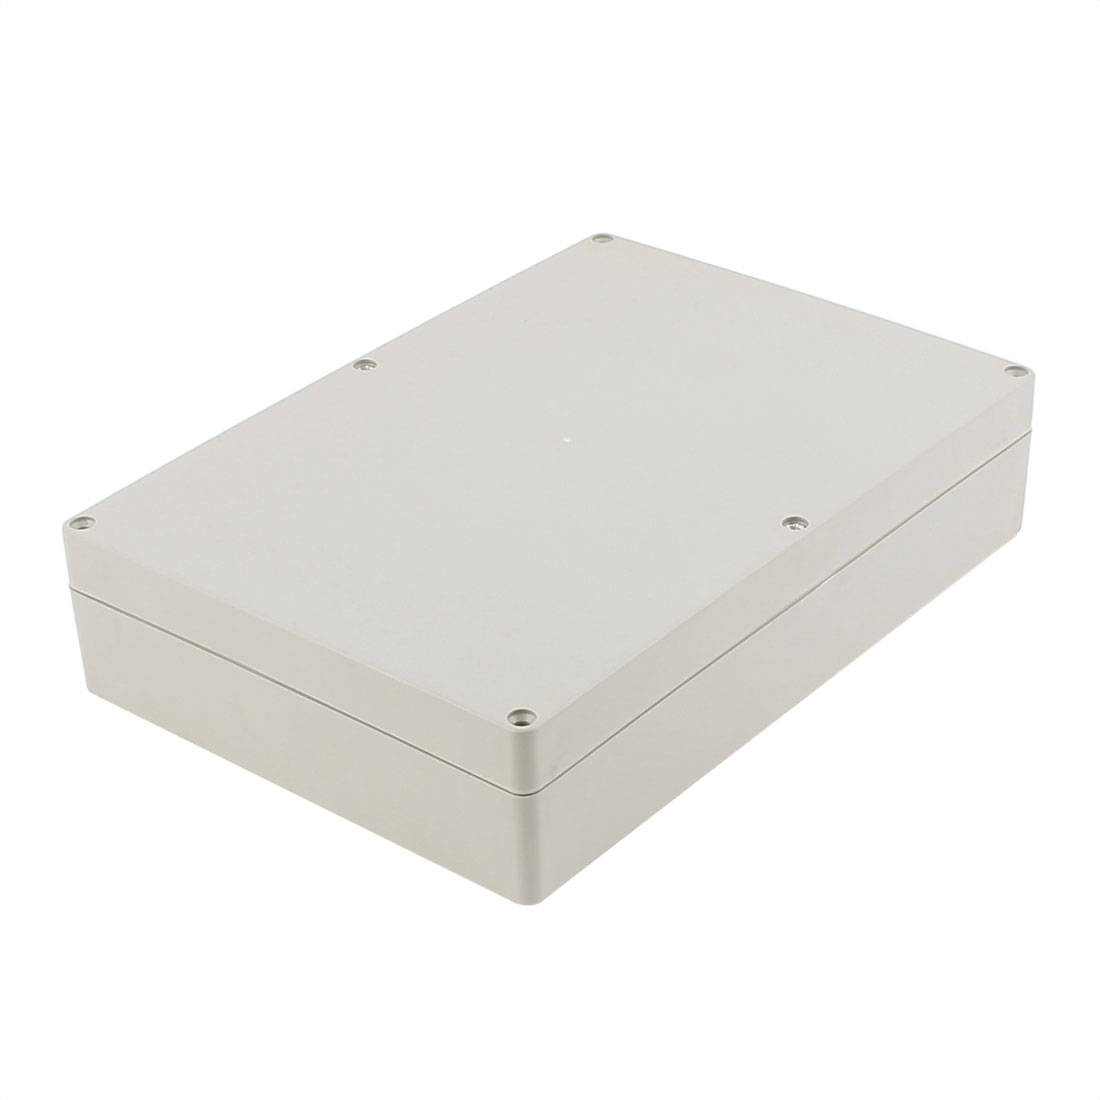 263 x 185 x 60mm Dustproof IP65 Junction Box Terminal Connecting Box Enclosure